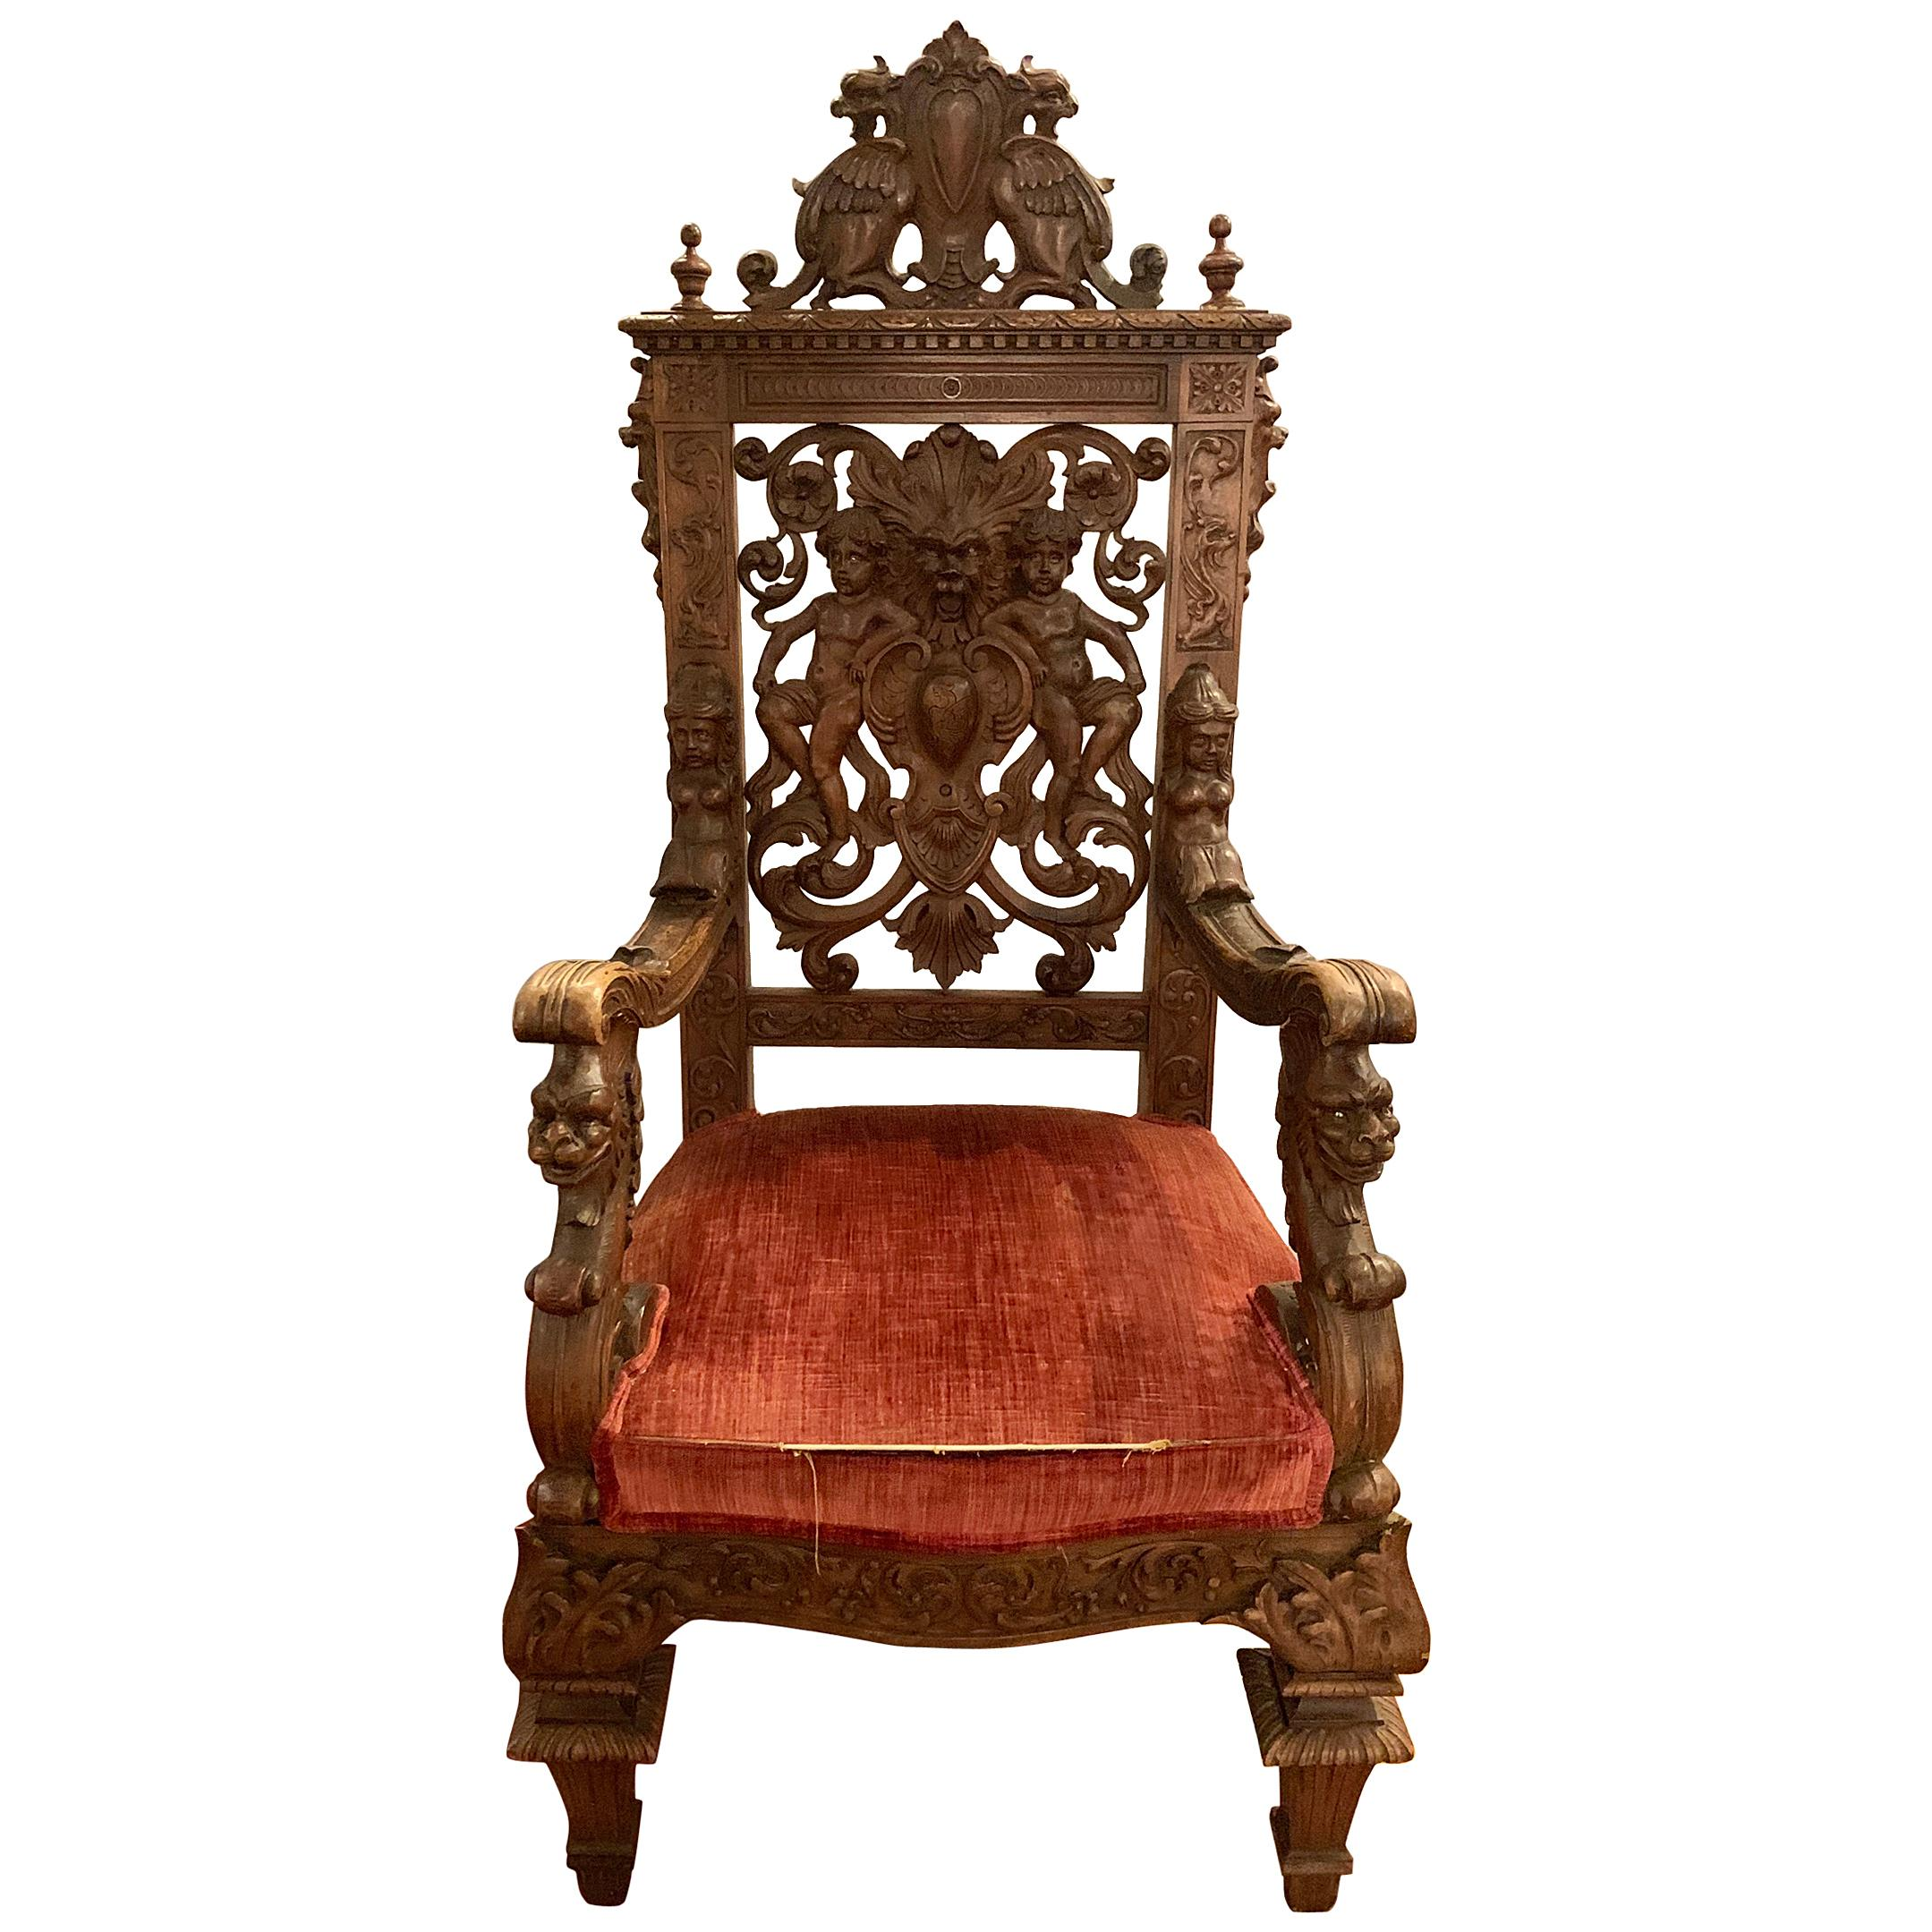 19th Century Throne Chair Manner or Herter Brothers